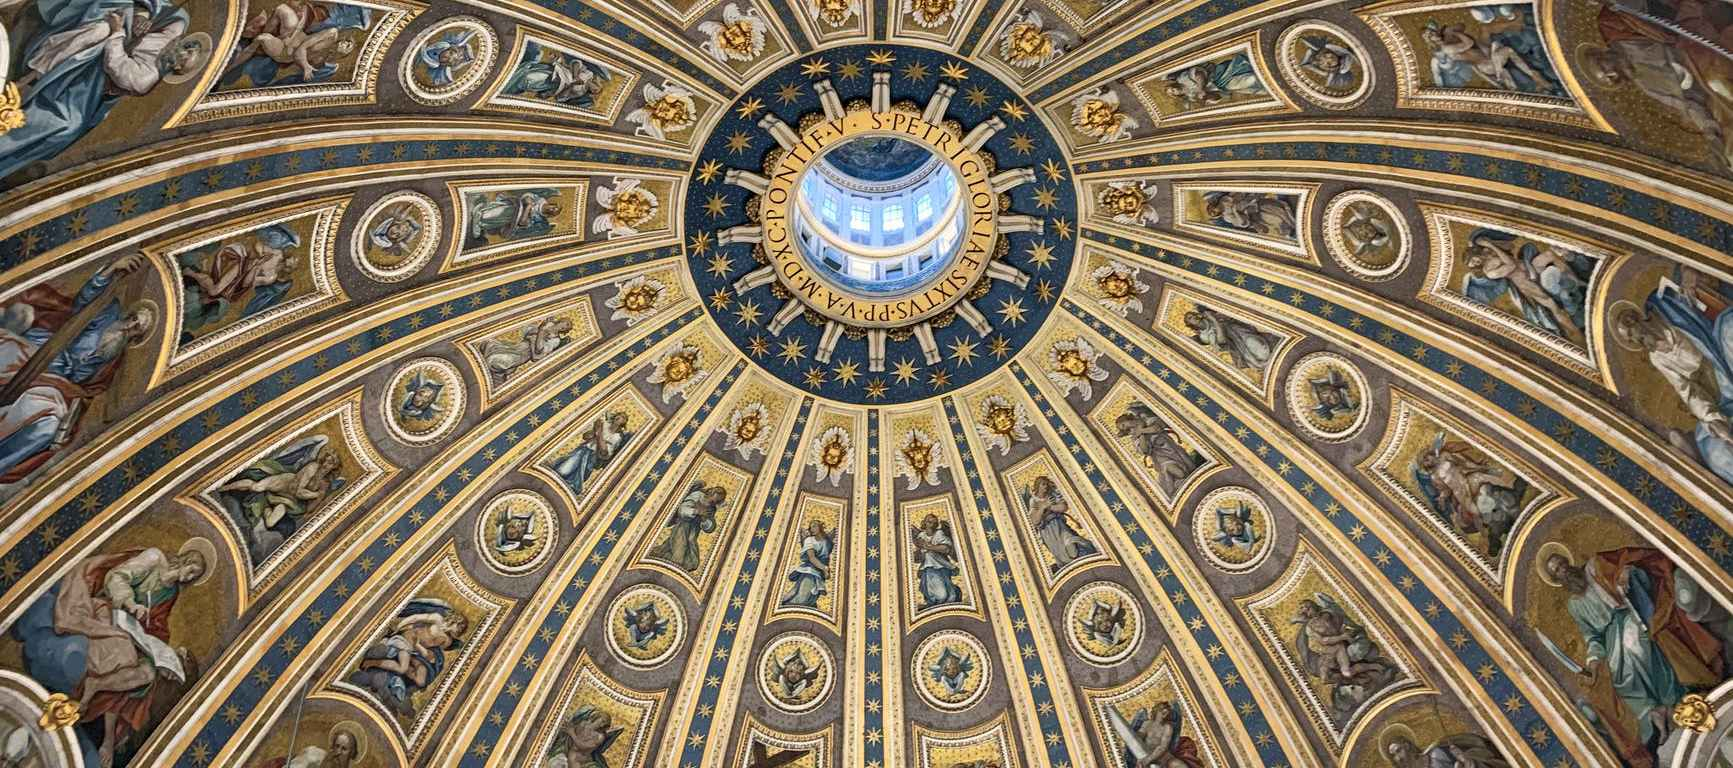 majestic dome ceiling with fresco paintings in catholic cathedral